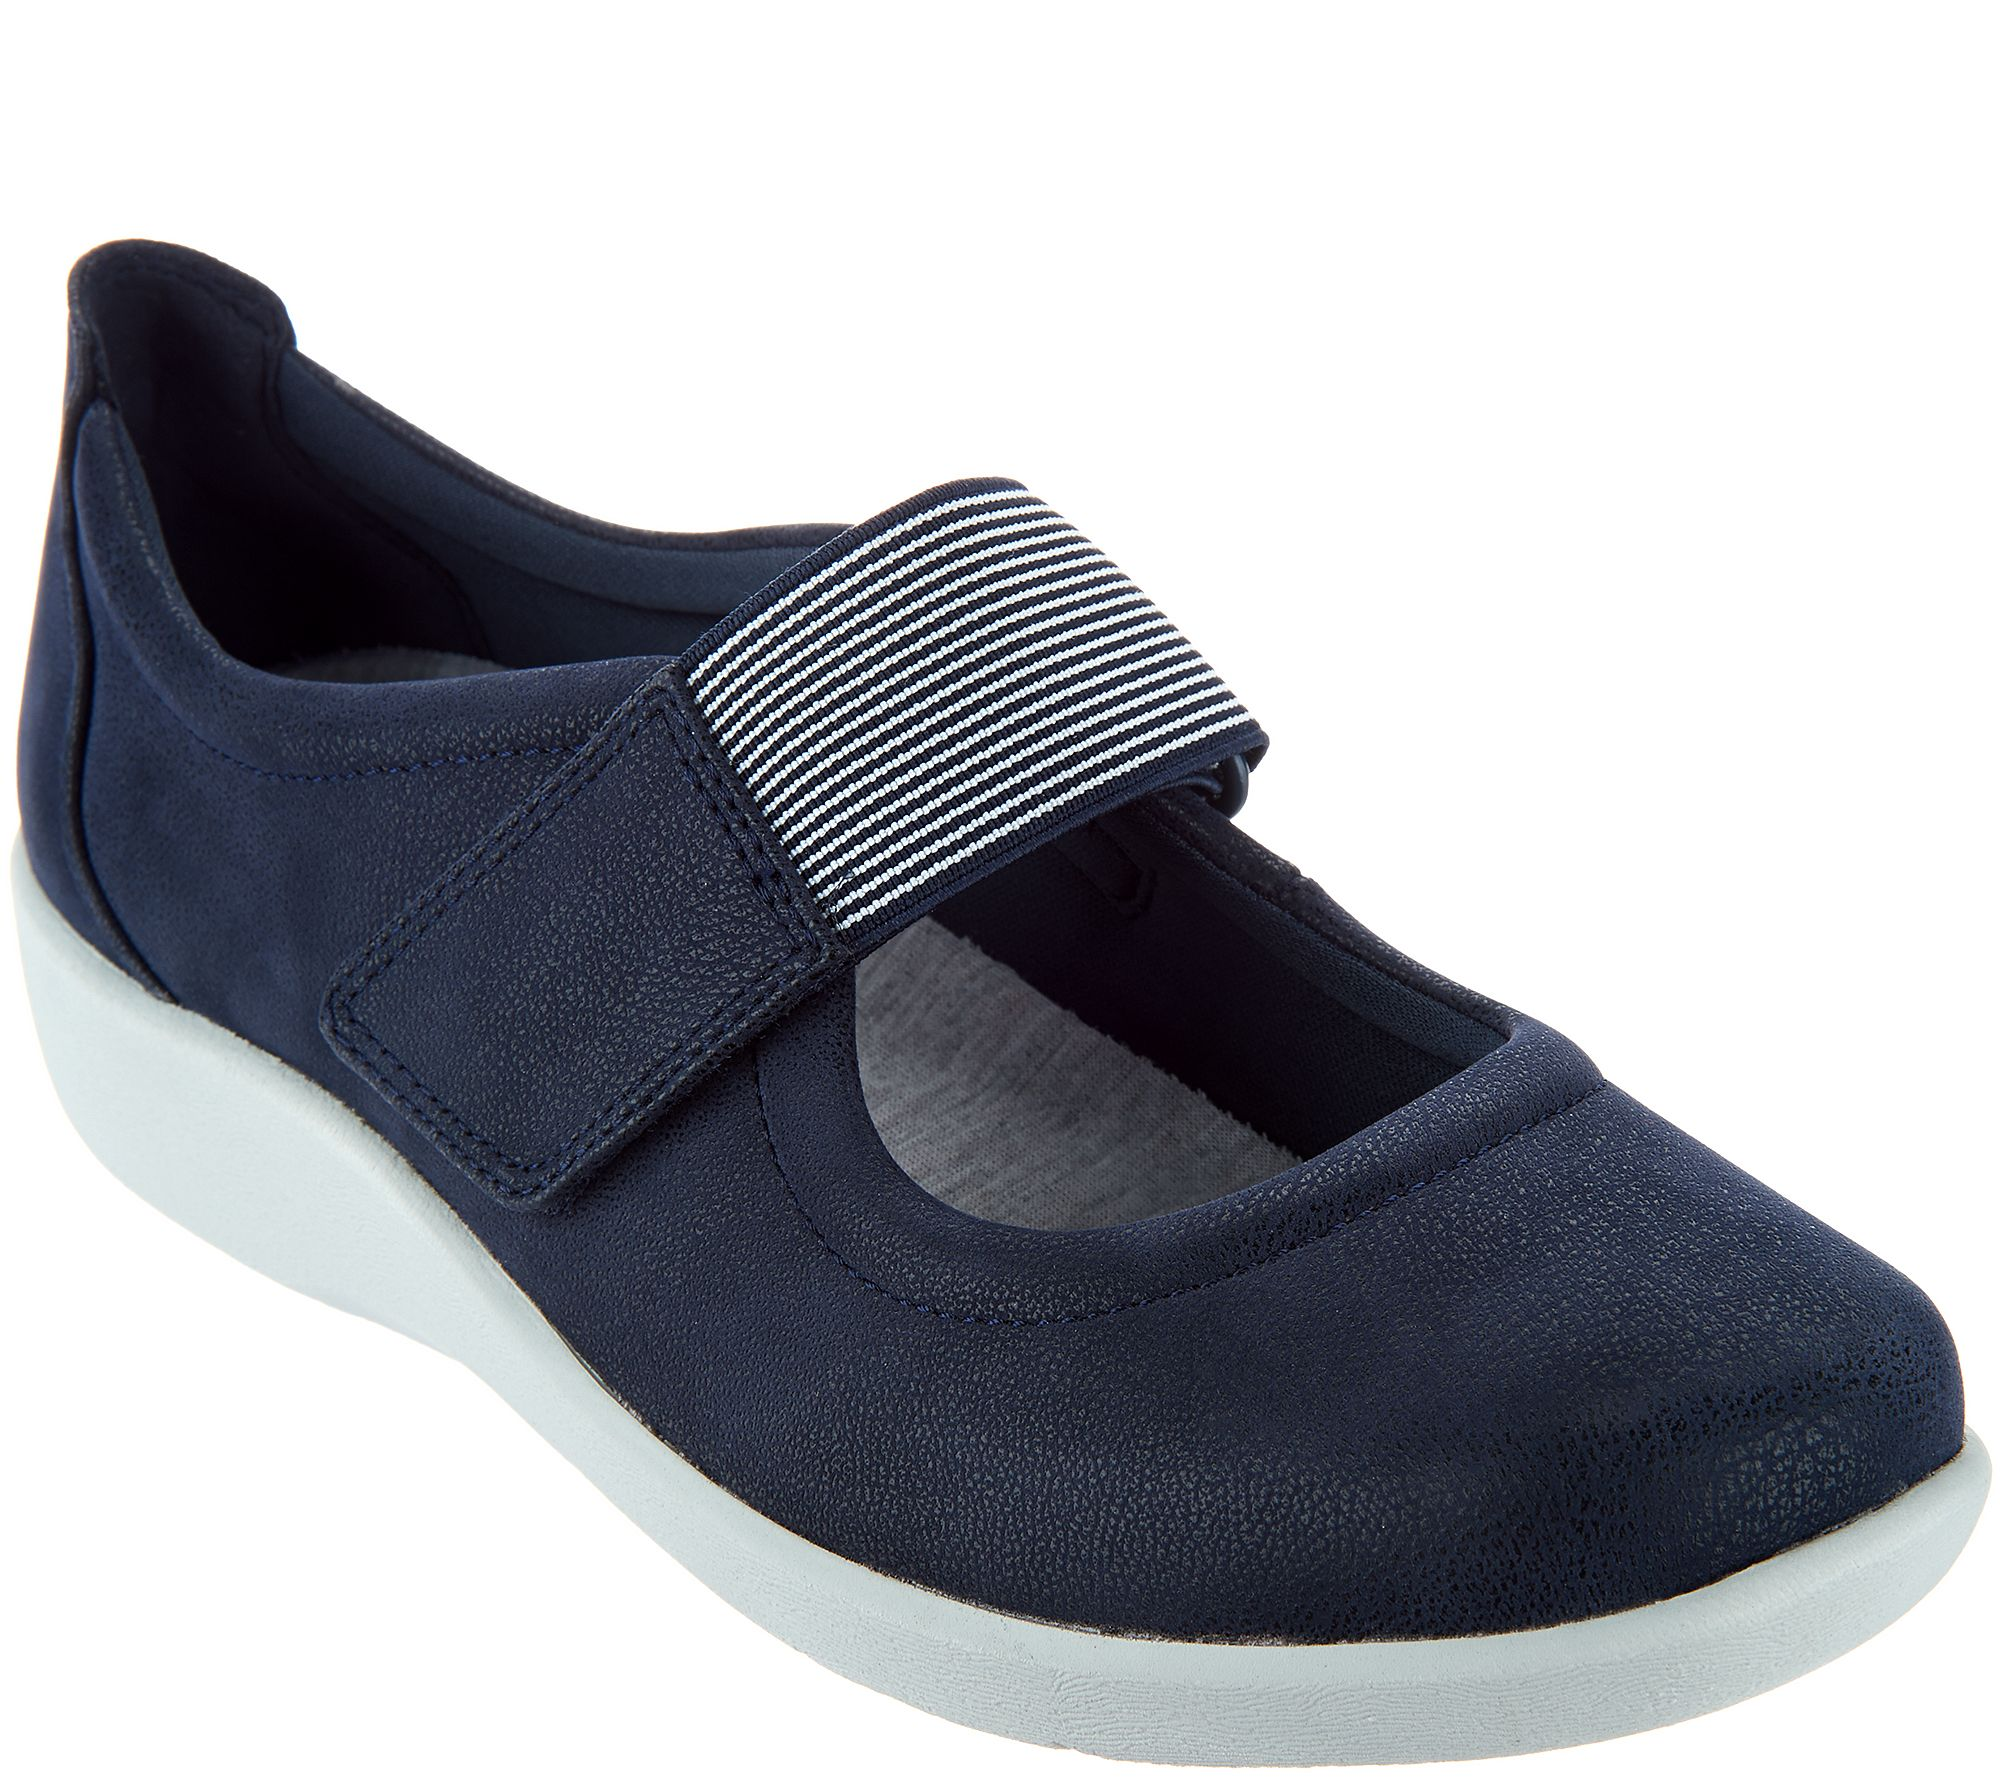 lower price with large discount classic style CLOUDSTEPPERS by Clarks Adjustable Mary Janes - Sillian Cala — QVC.com